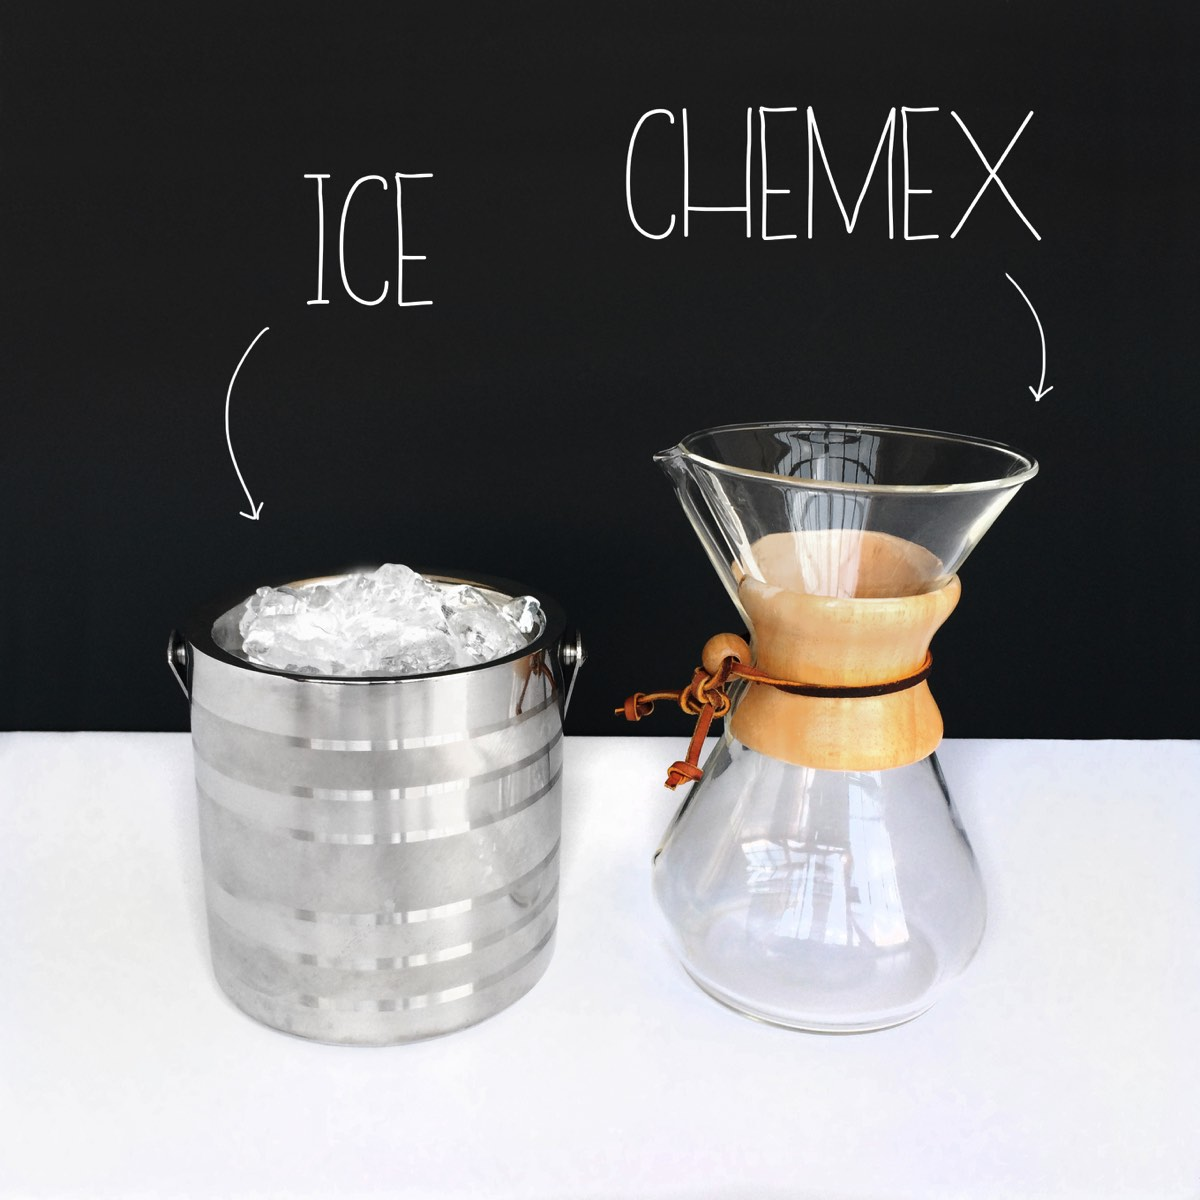 Iced Pour Over - Ingredients | Mrs Amber Apple Blog